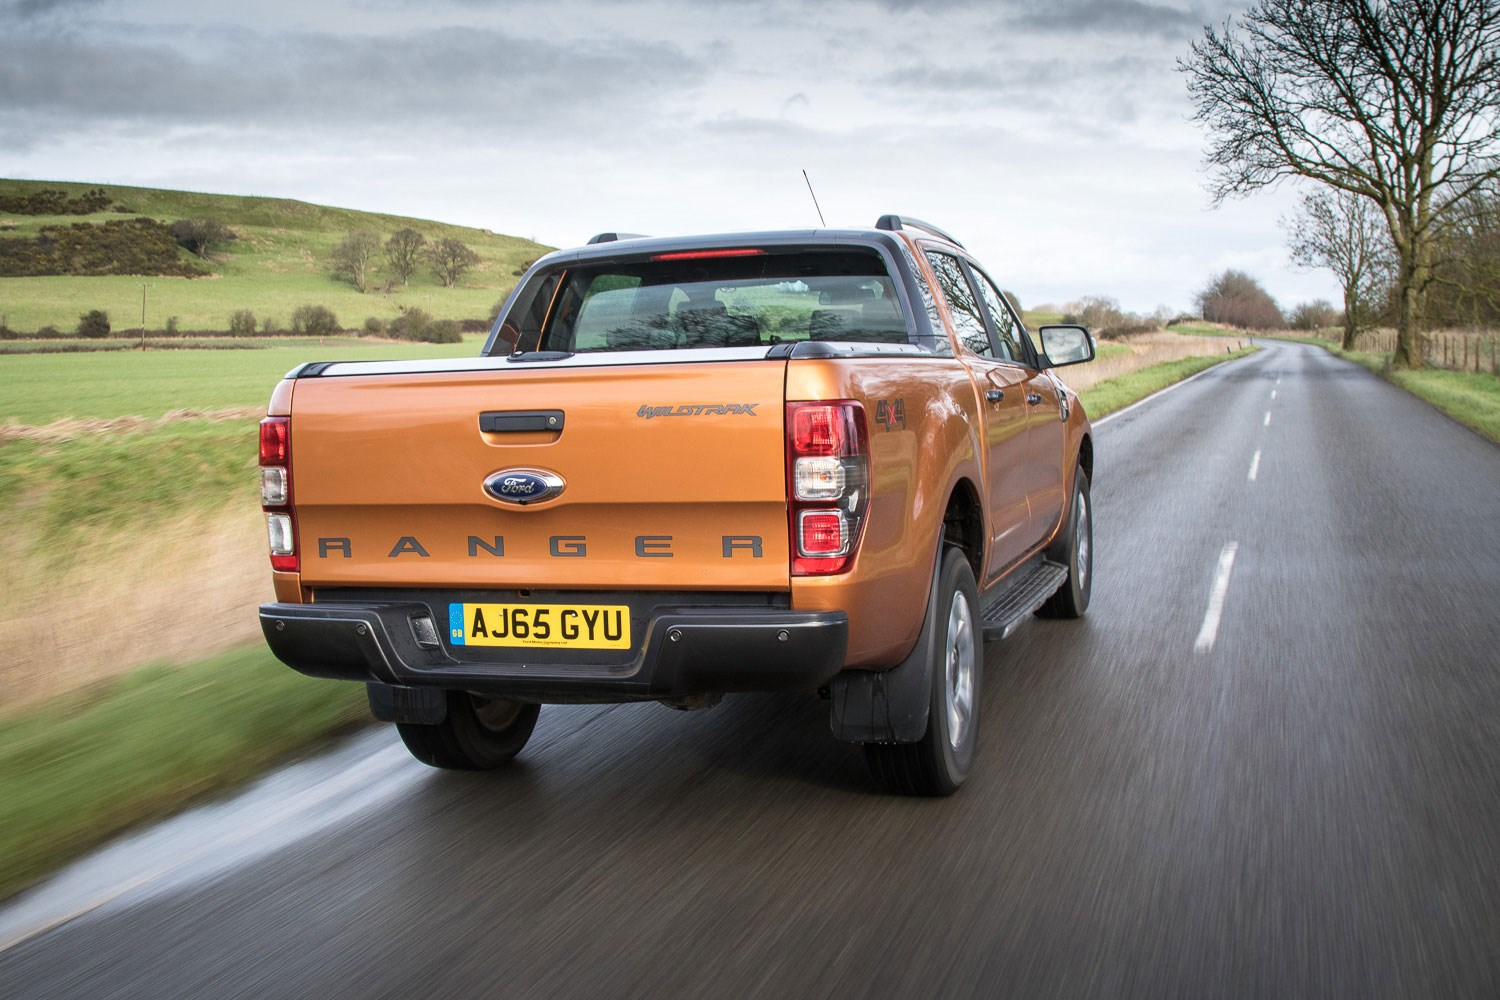 Ford Ranger review - 2016 facelift, rear view, driving, orange Wildtrak